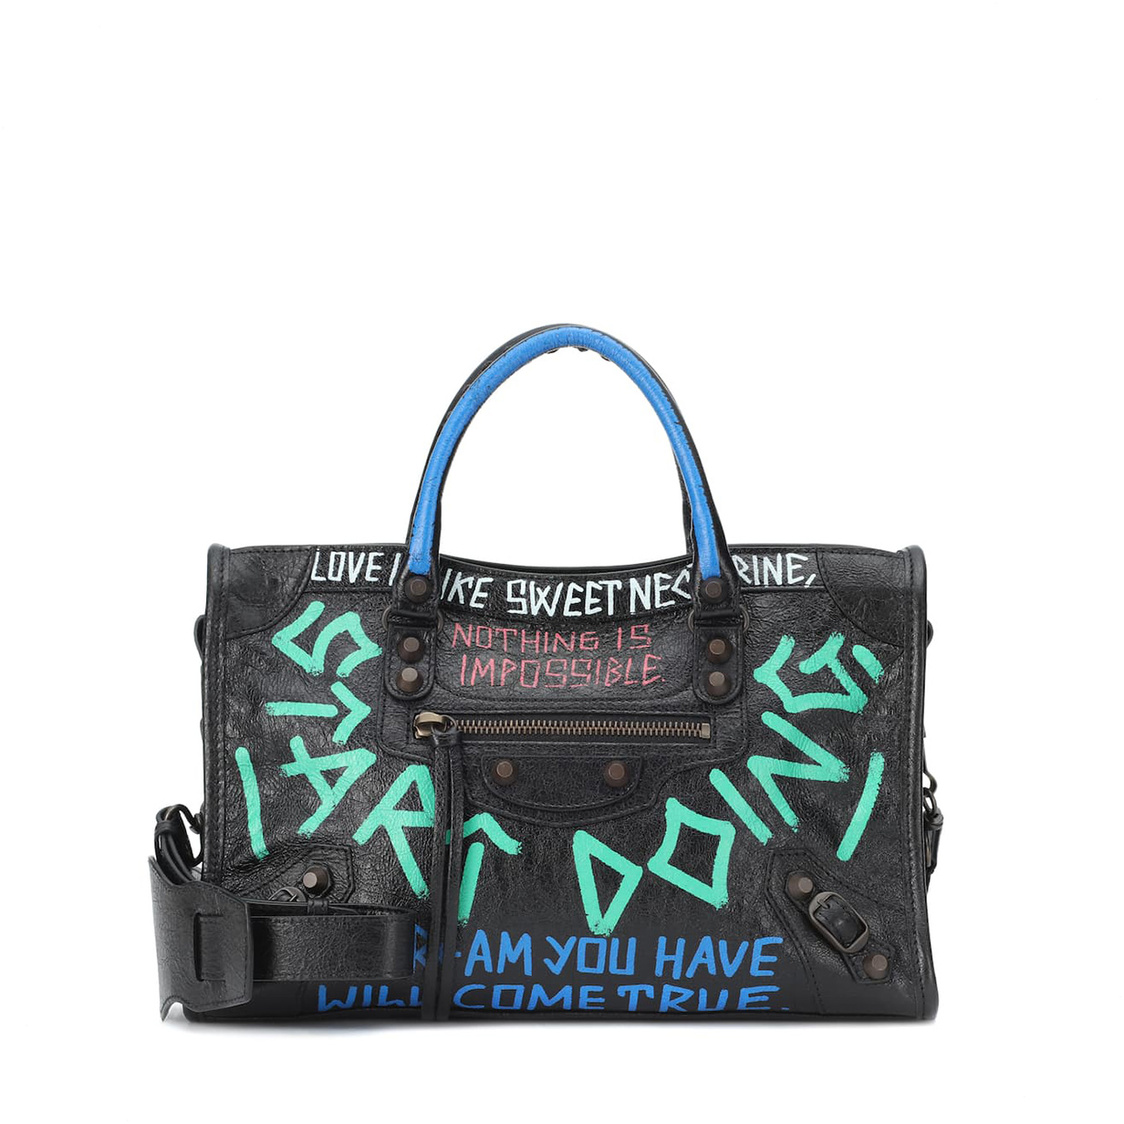 Balenciaga Graffiti Classic City Bag